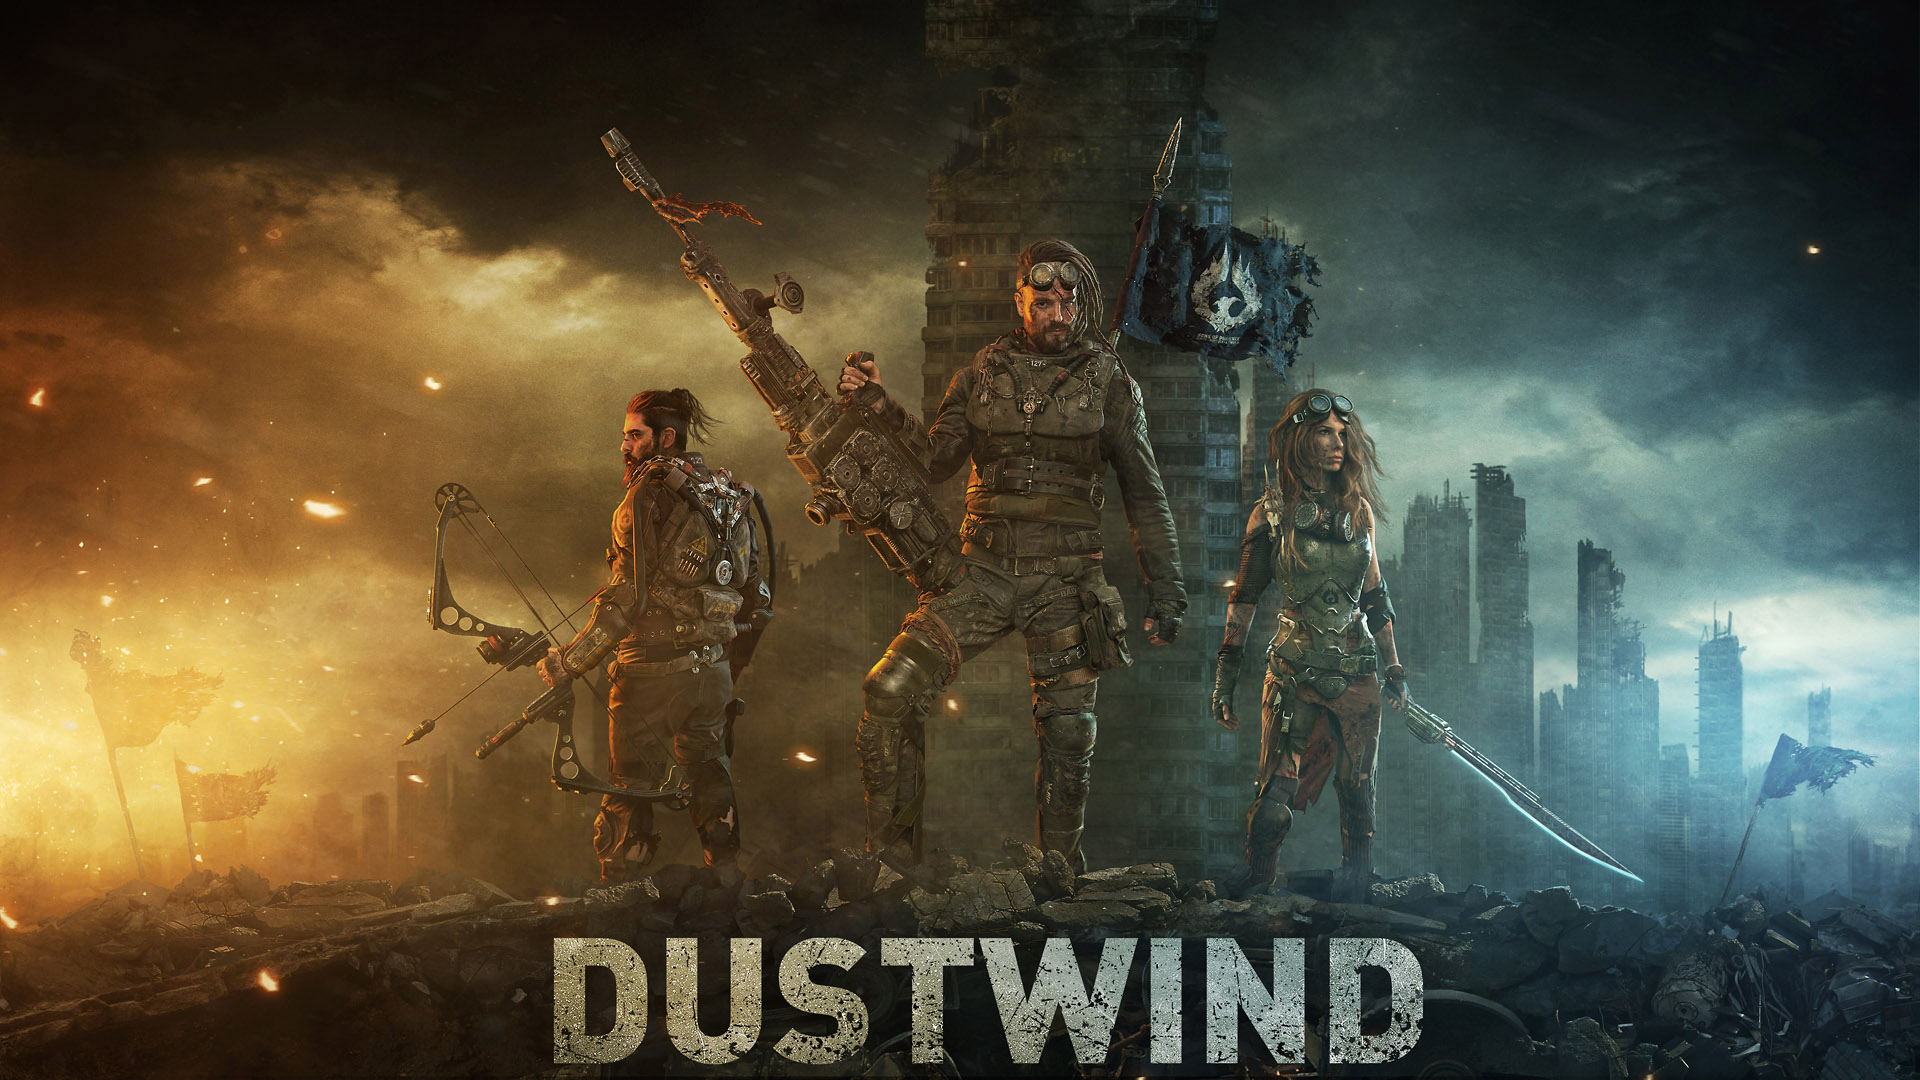 'Dustwind,' Fight in a Post-Apocalyptic World of Embers!